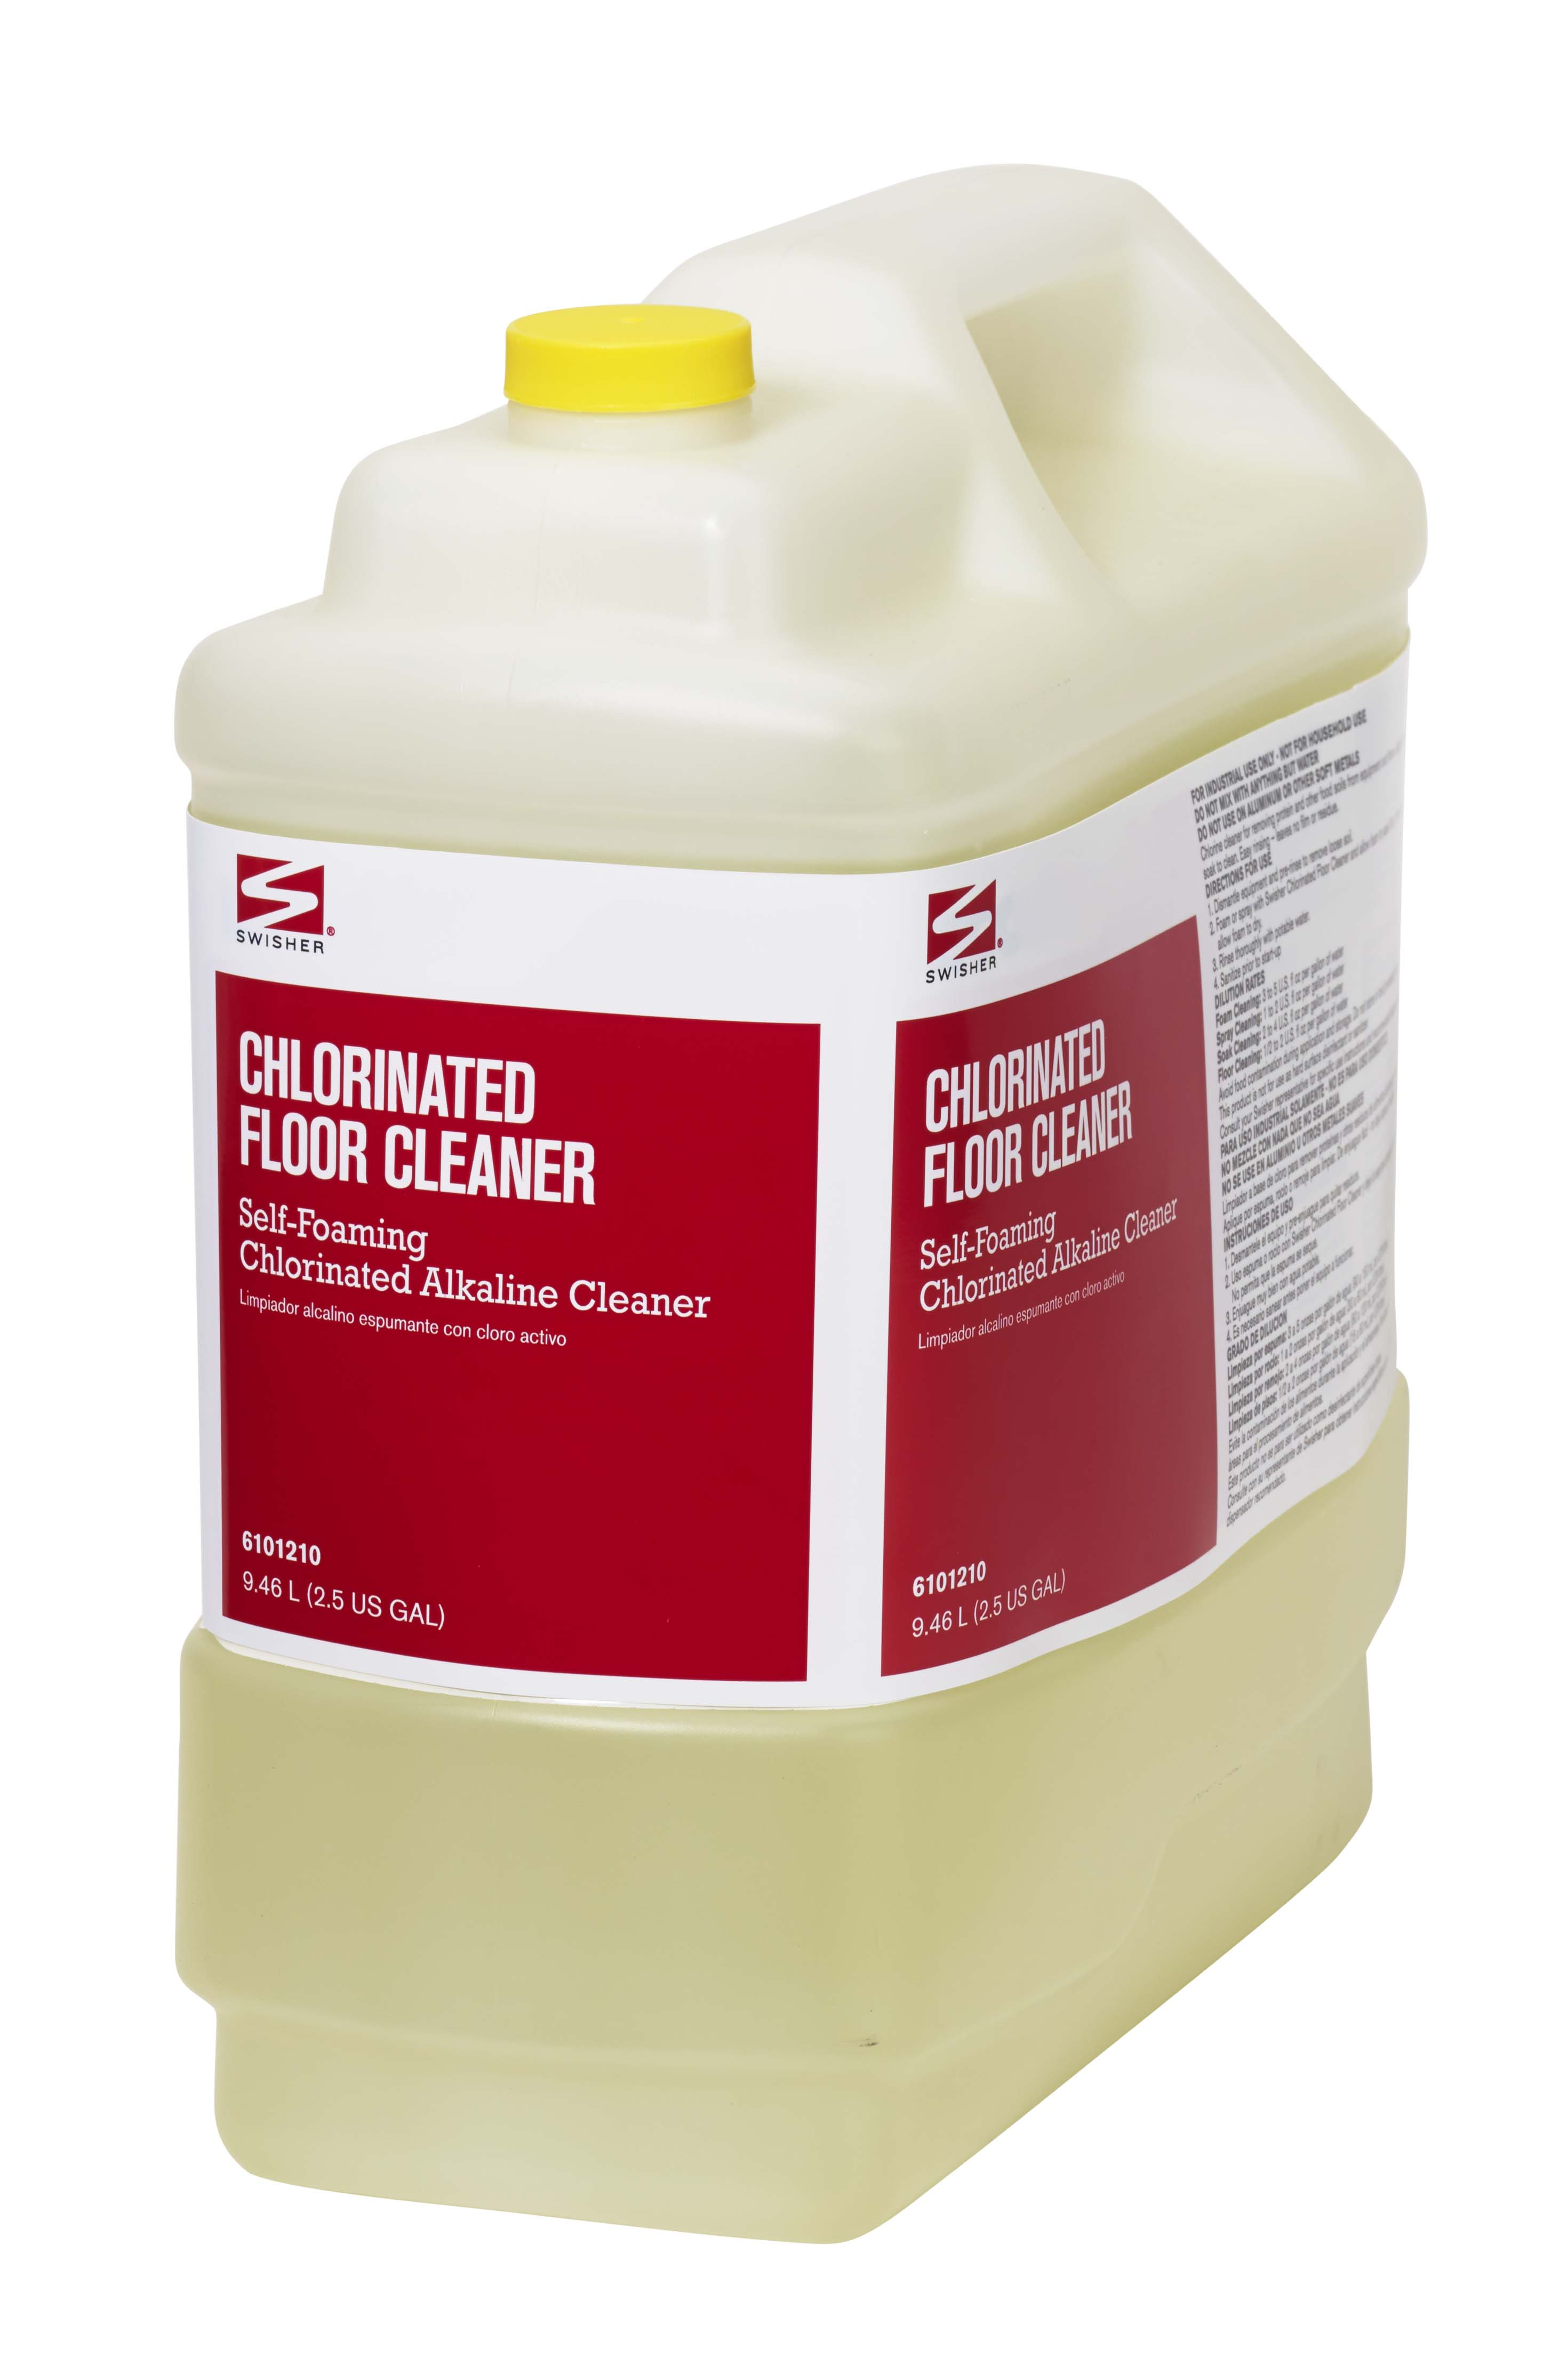 Swisher Chlorinated Floor Cleaner